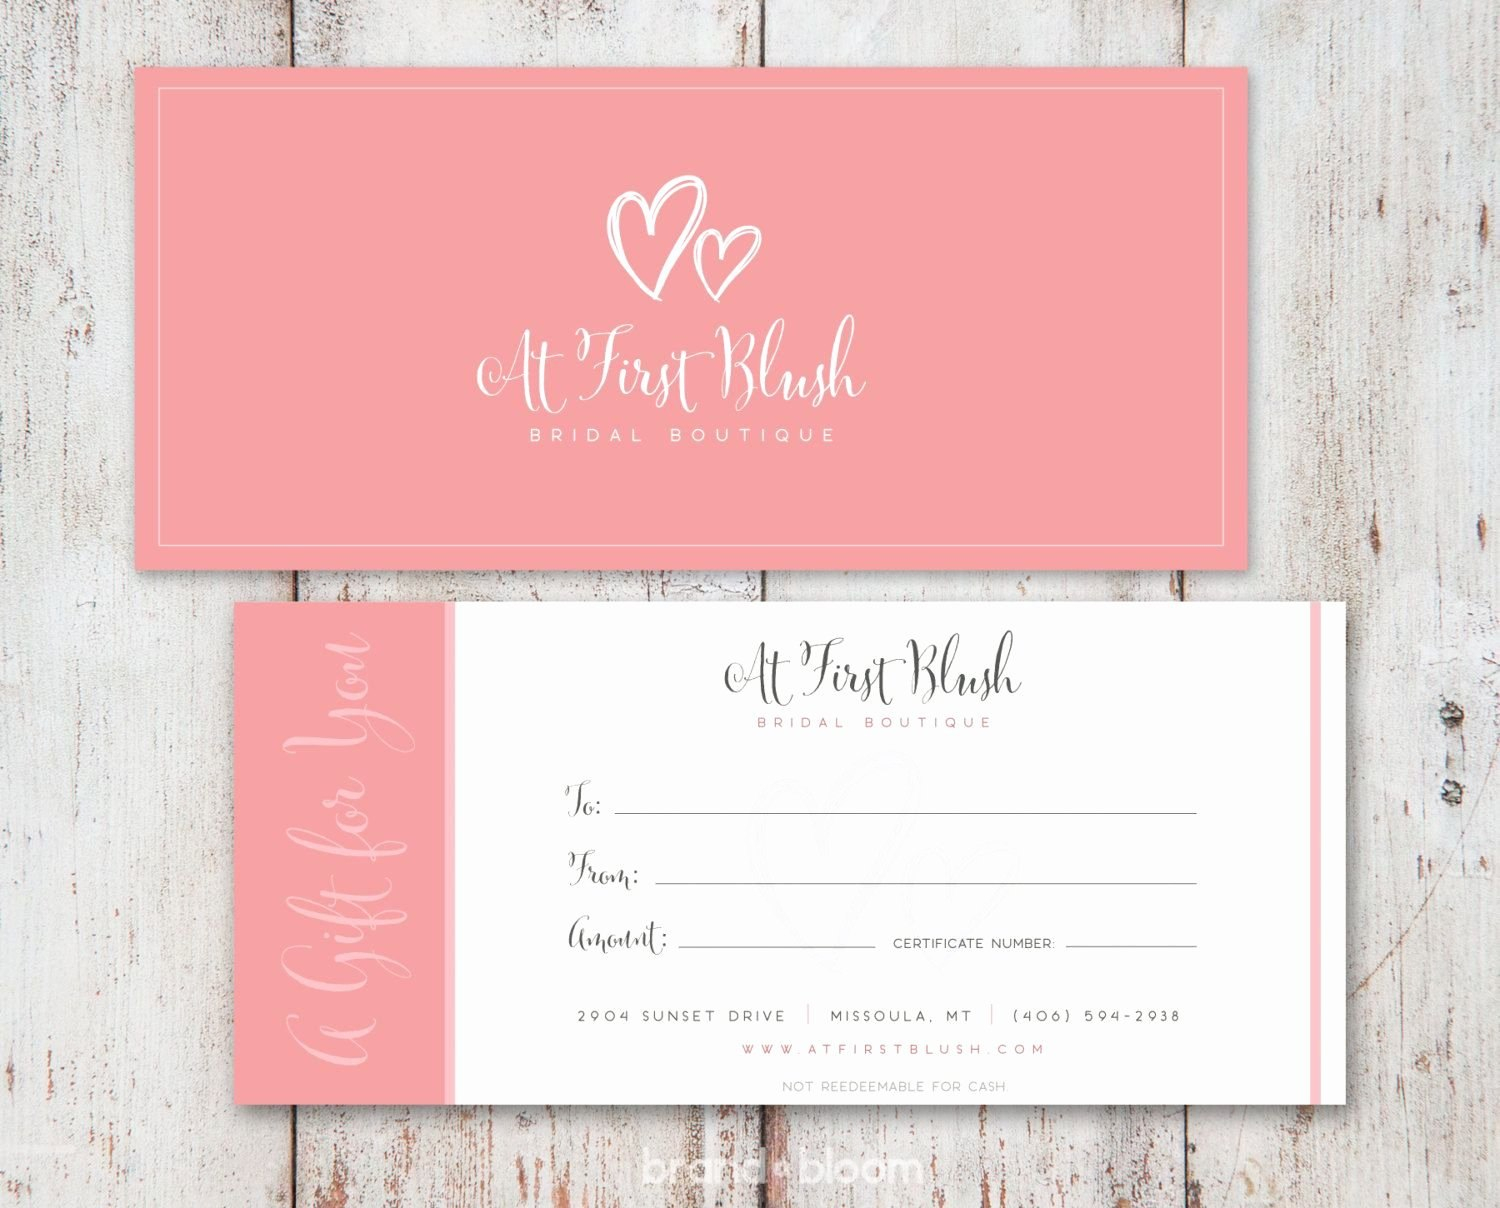 Gift Card Design Template Luxury Free Gift Certificate Template Inside Custom Gift Certificate Template